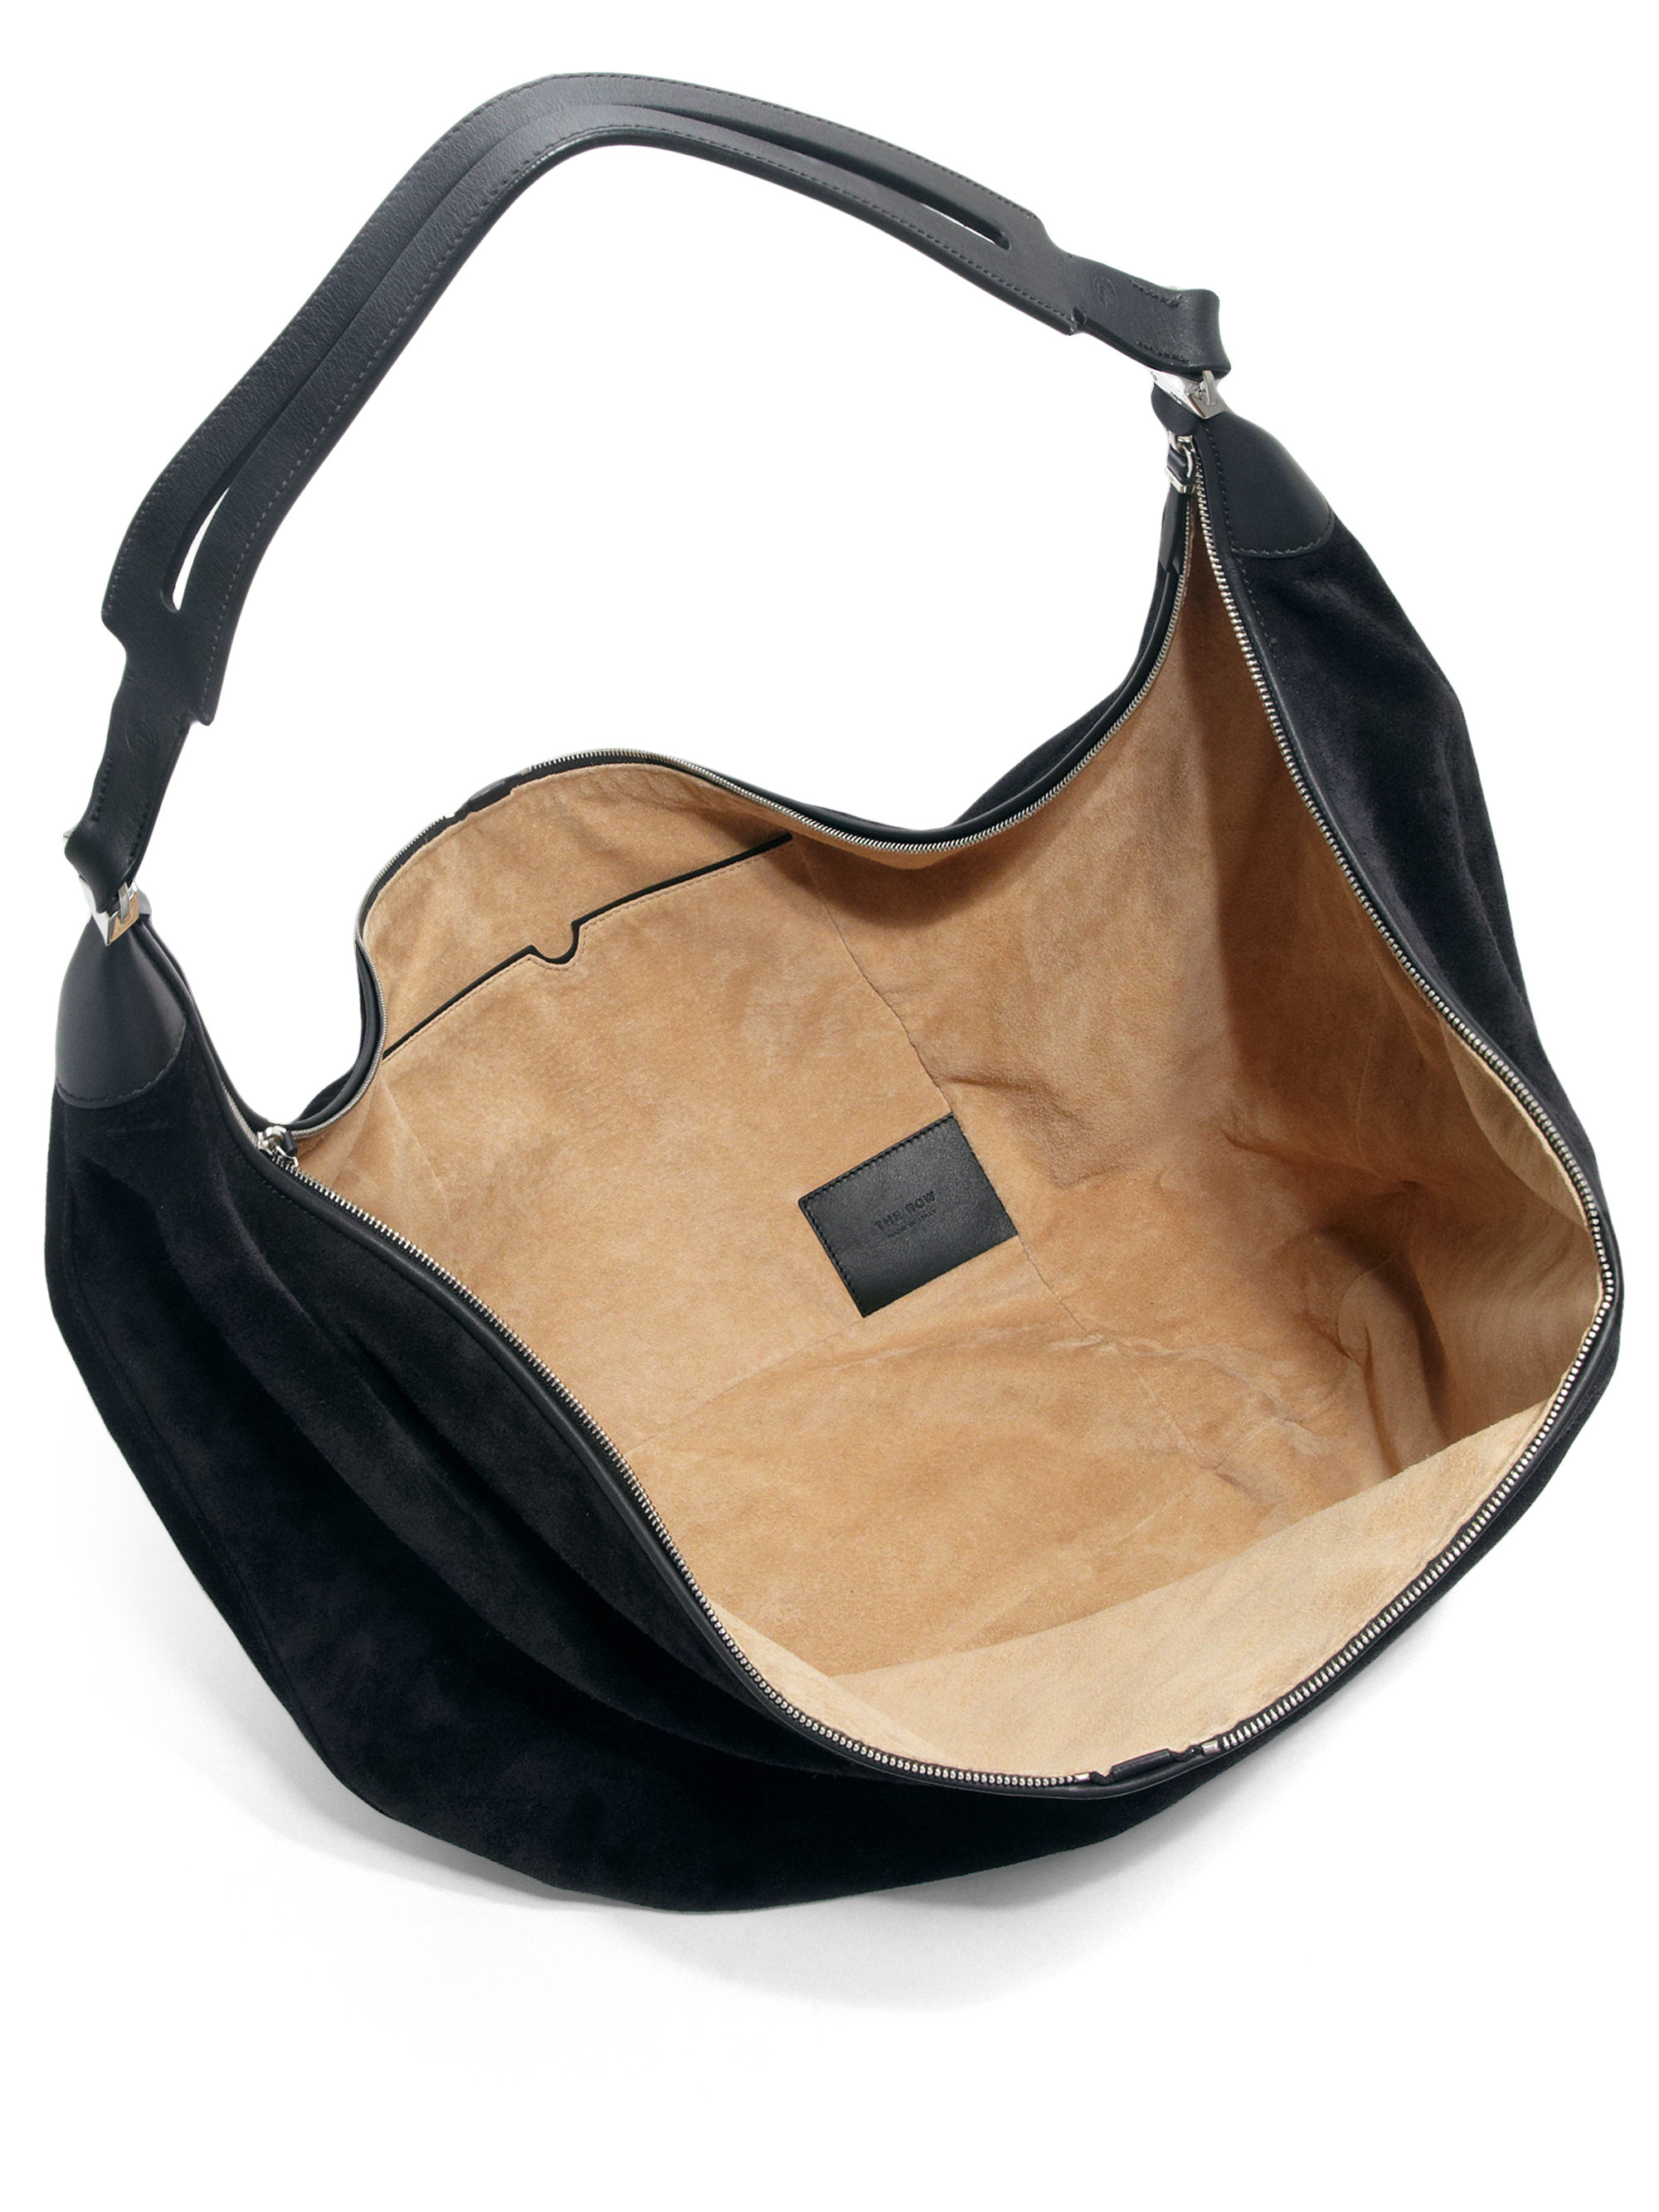 48a6f2b0a2de Lyst - The Row Sling 12 Suede Hobo Bag in Black